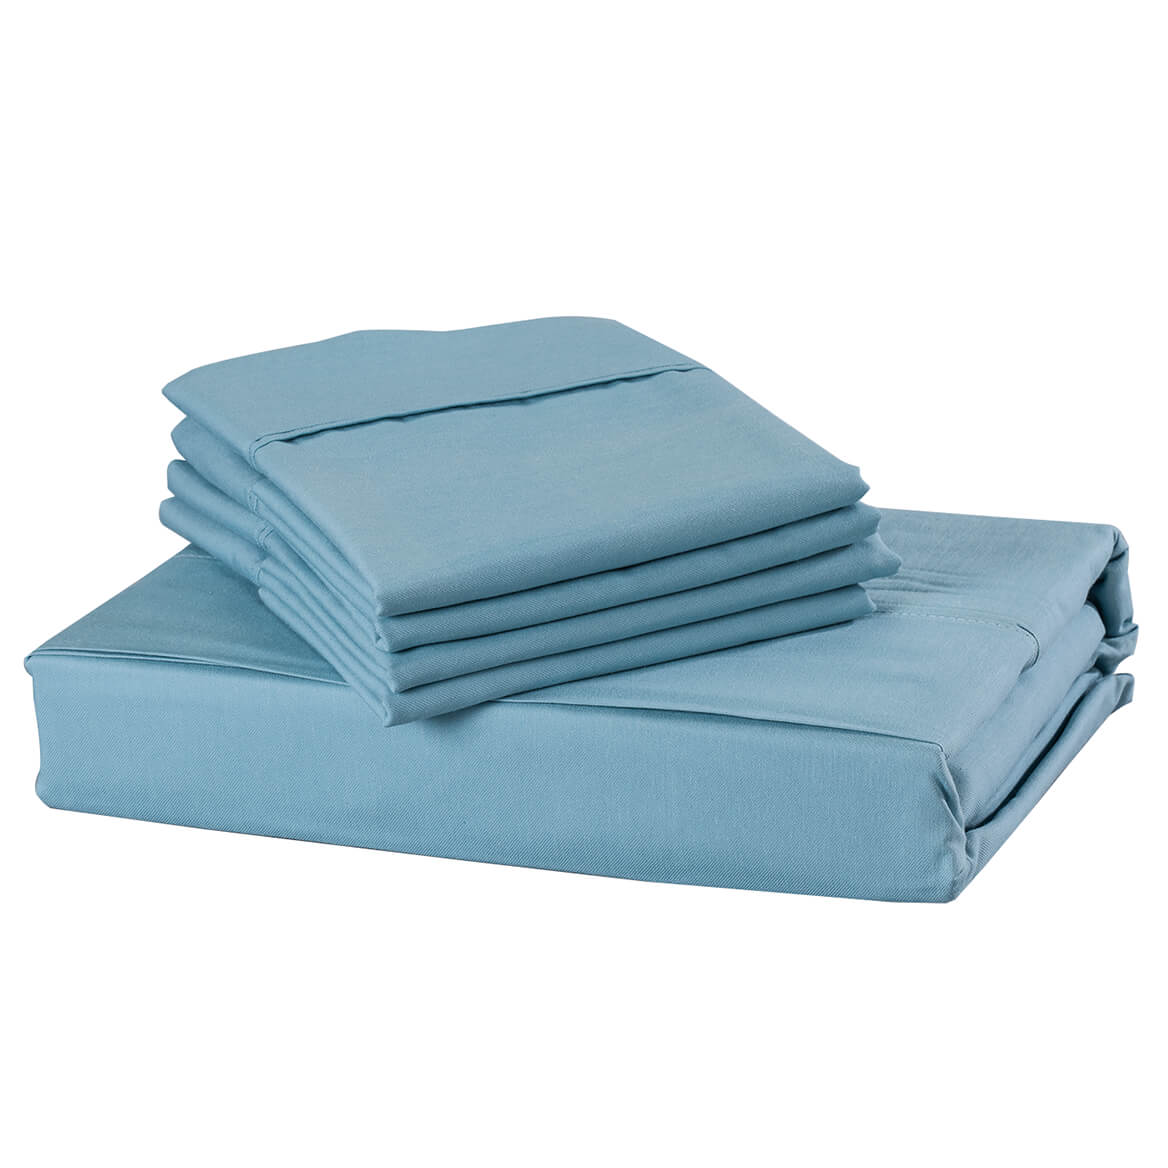 6-Piece 850 TC Cotton Rich Twill Sheet Set